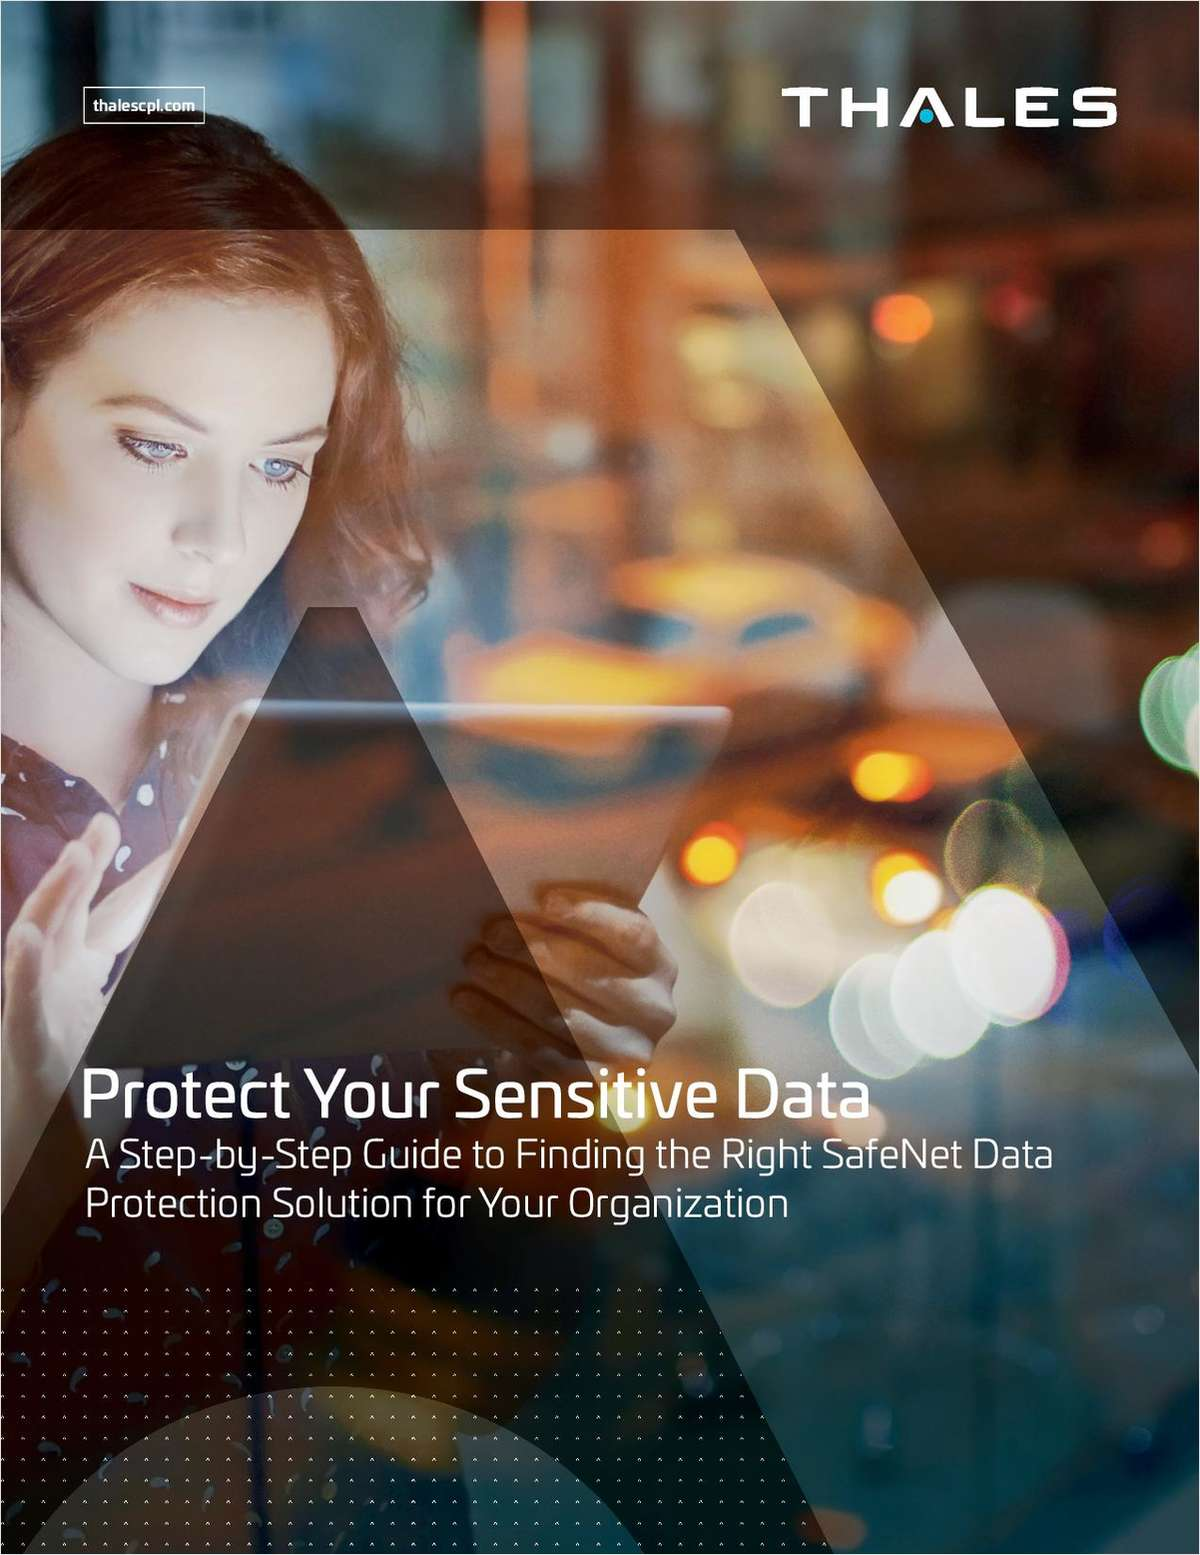 Protect Your Sensitive Data